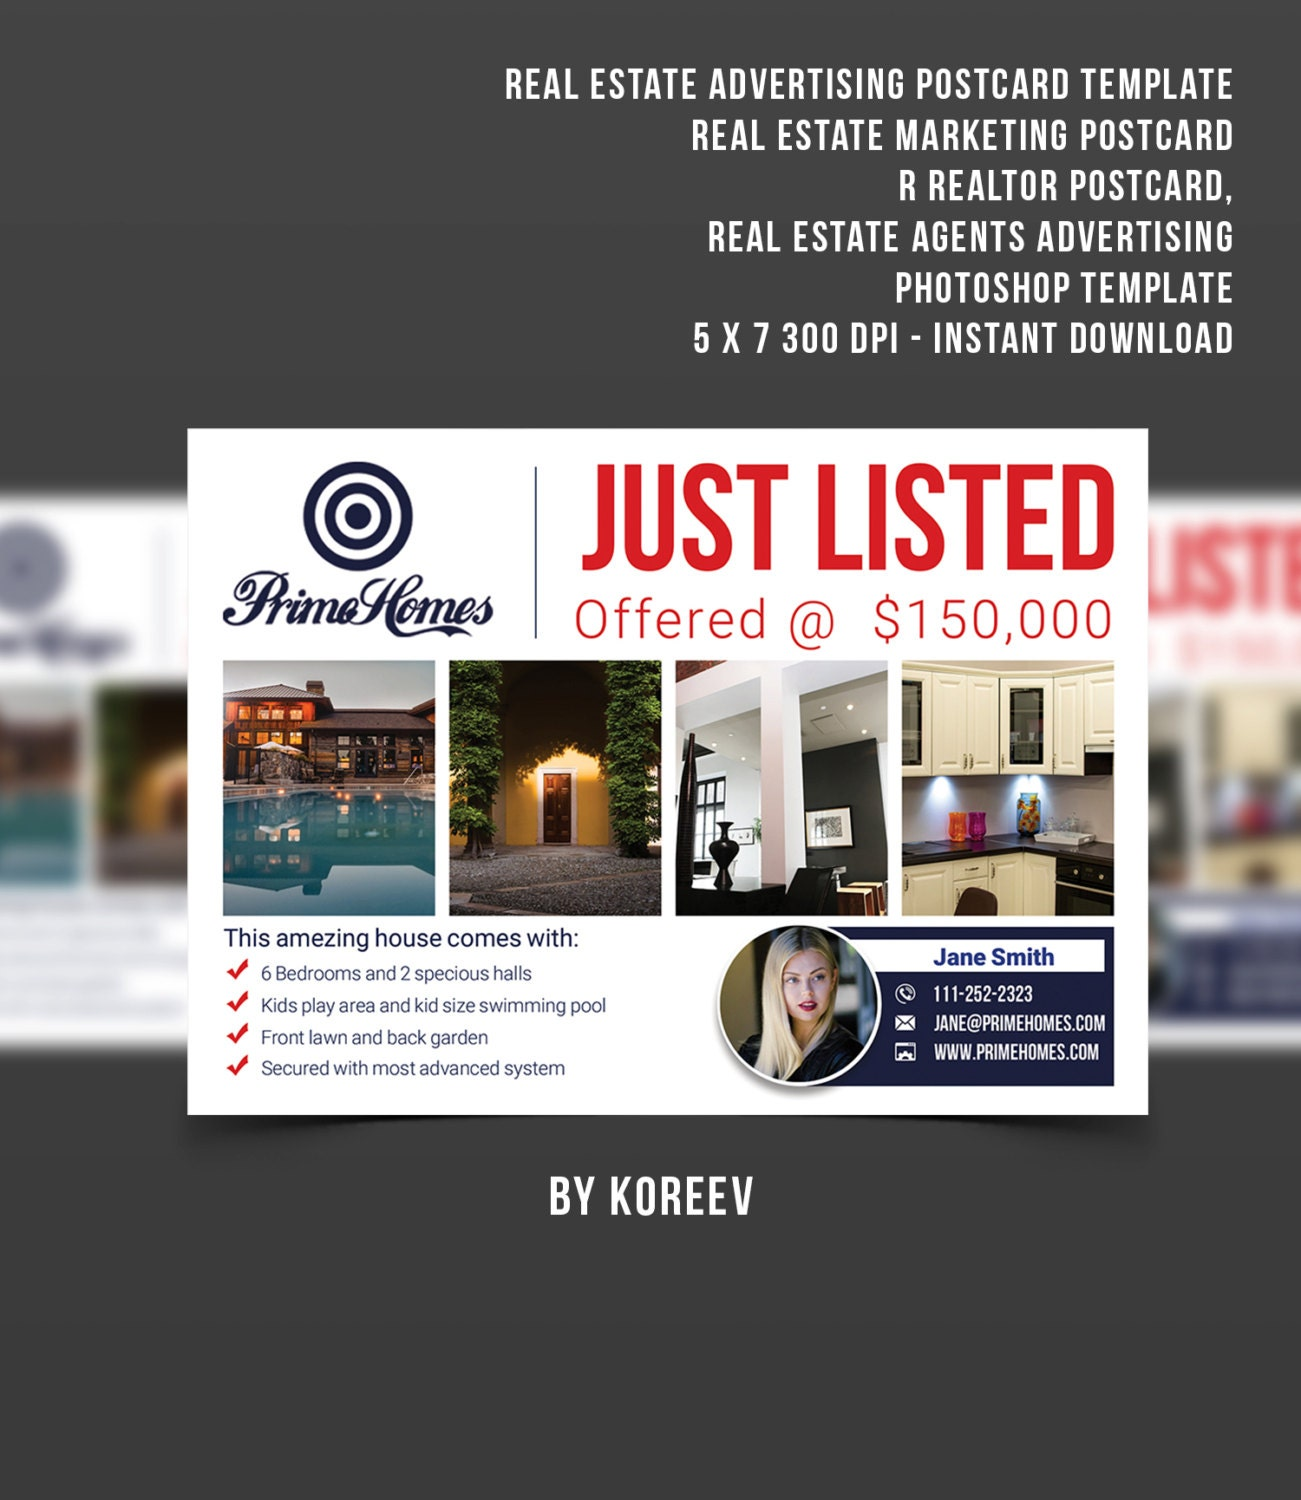 Real Estate advertising Postcard Template Editable in MS Word